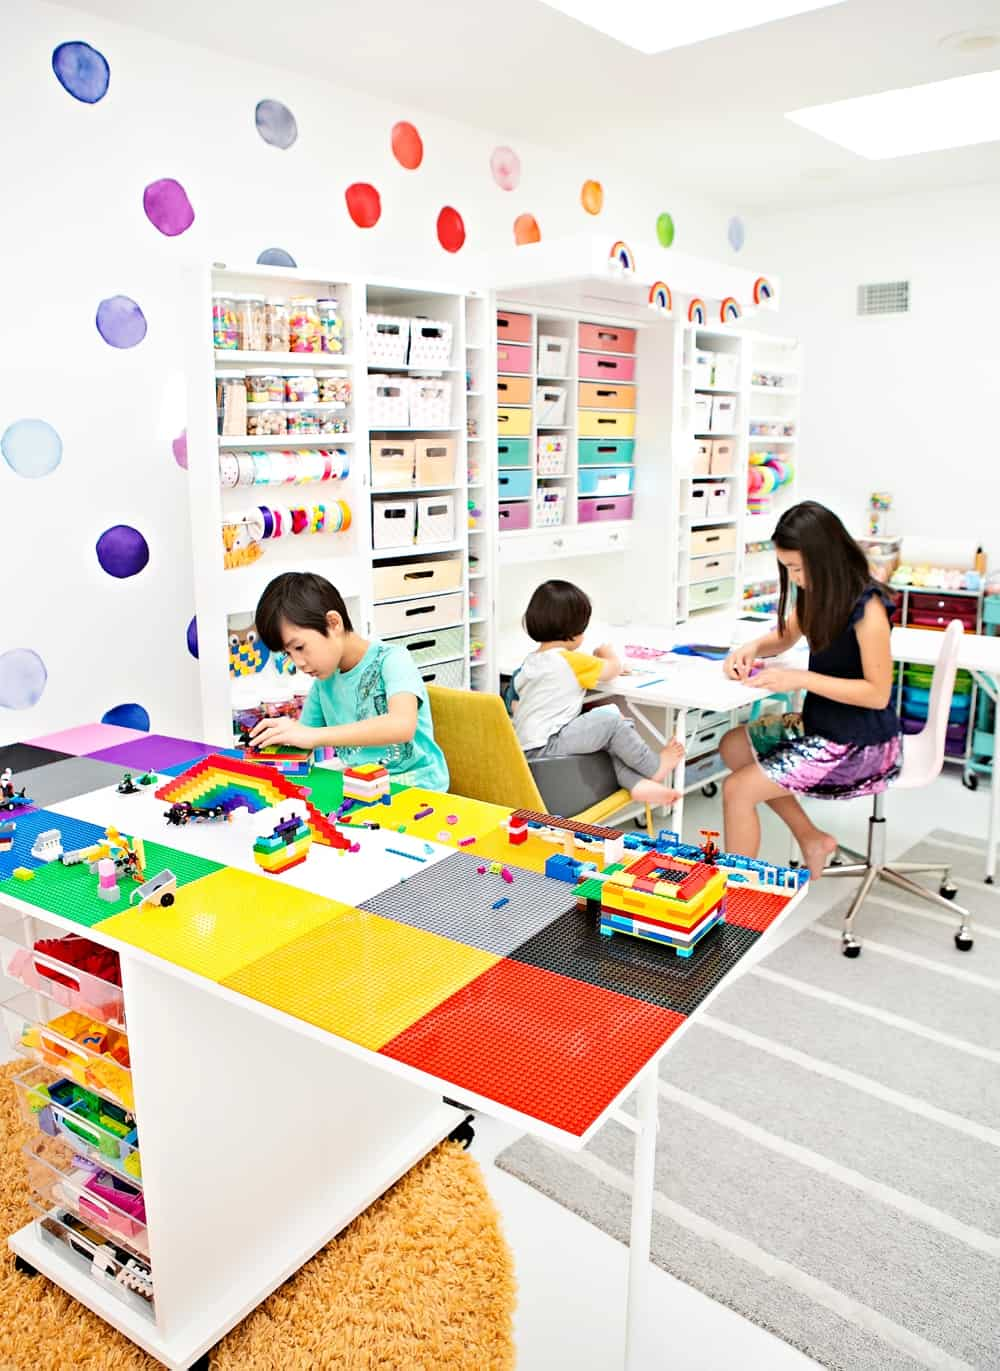 DIY LEGO Table shown in a kids craft room